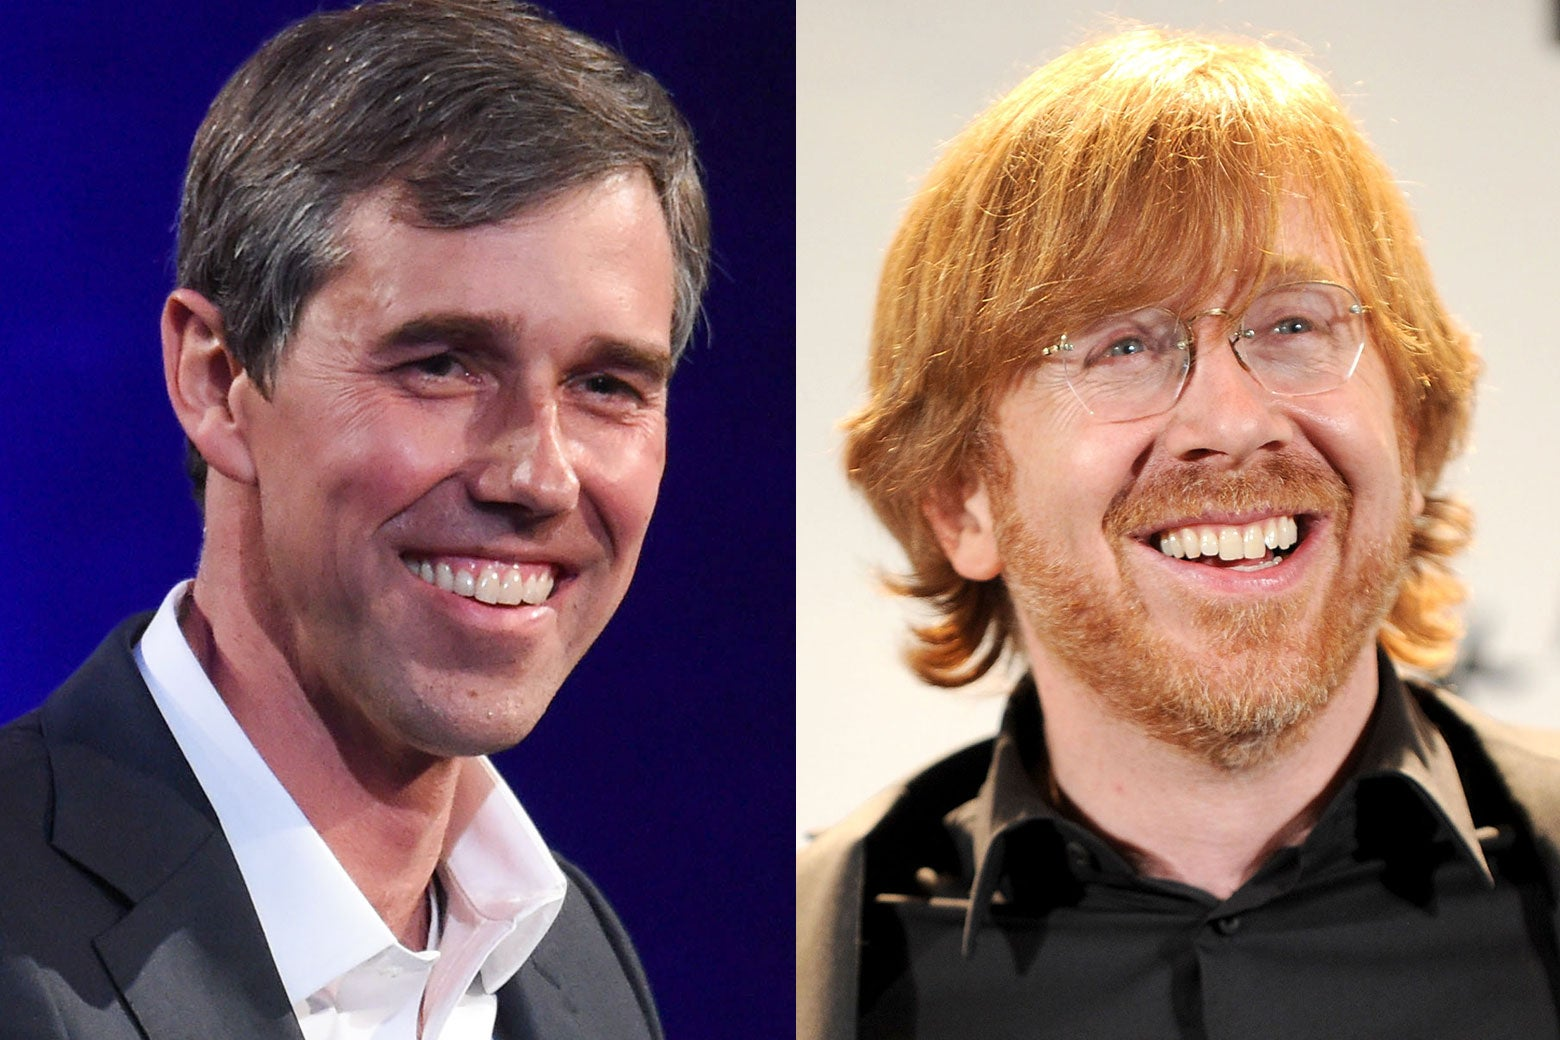 O'Rourke and Anastasio seen smiling in close-up.